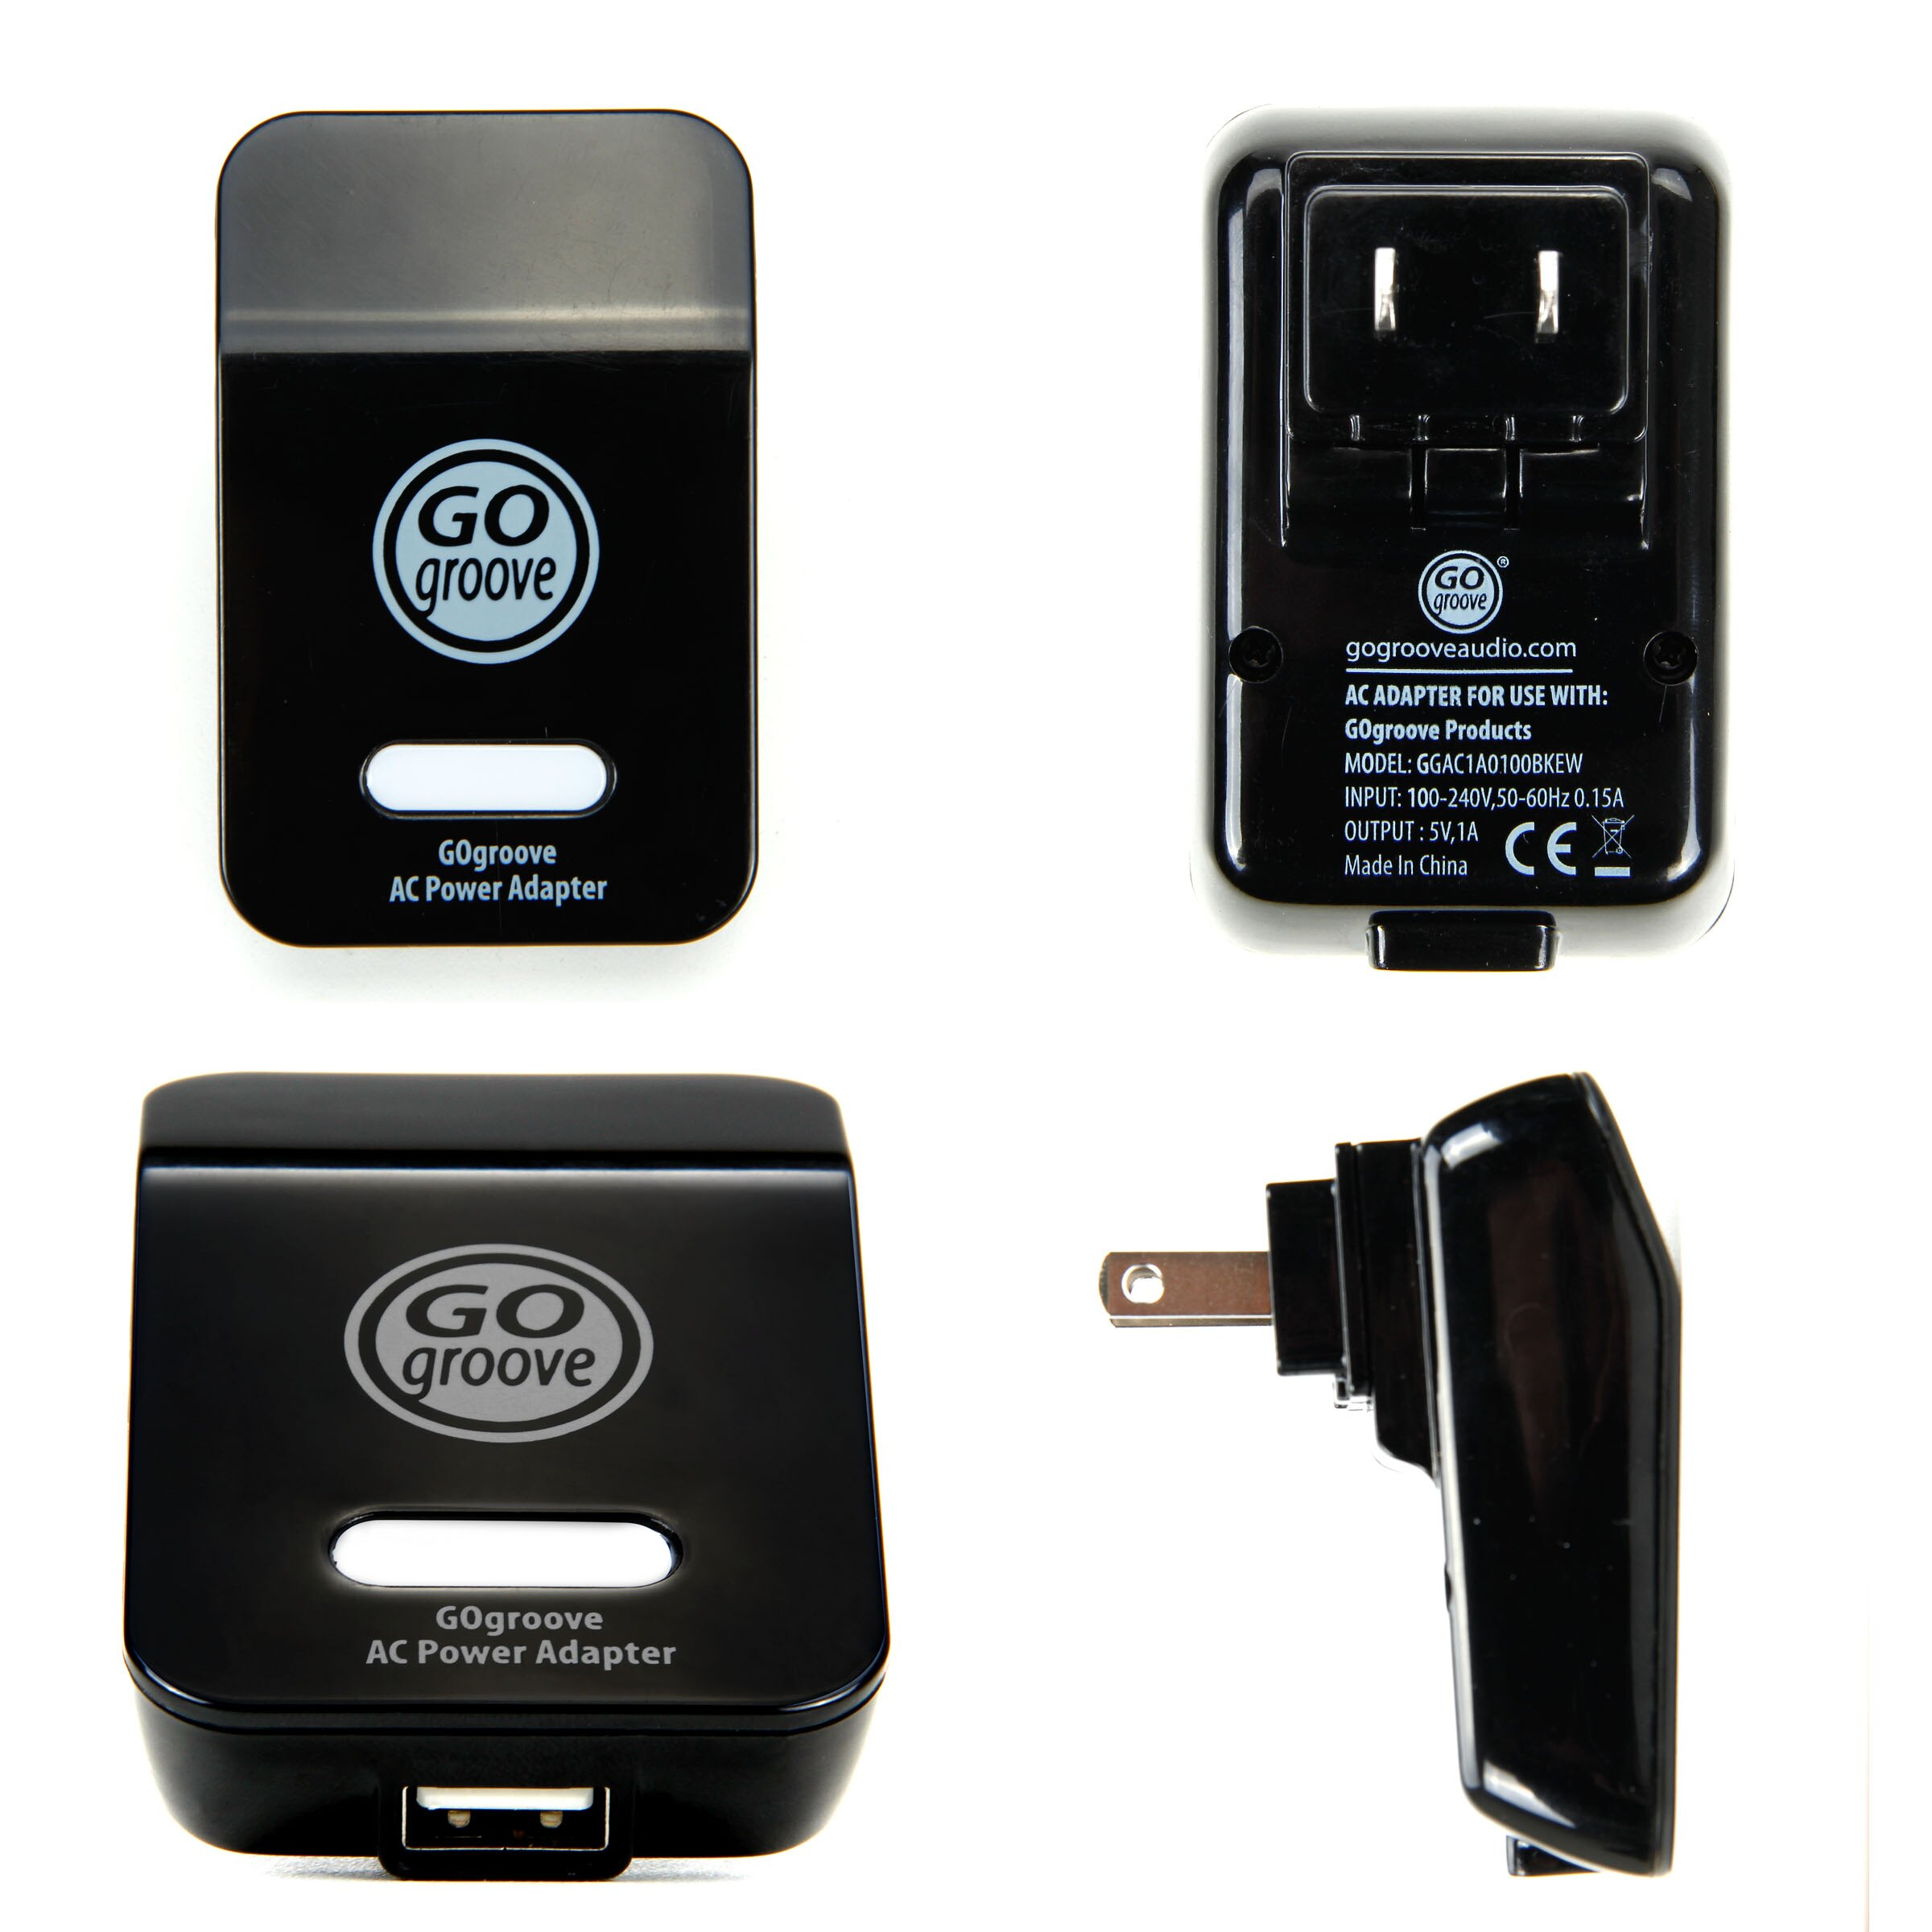 Universal USB Power Adapter Plug by GOgroove for GoPro Hero and more Action Cameras 3